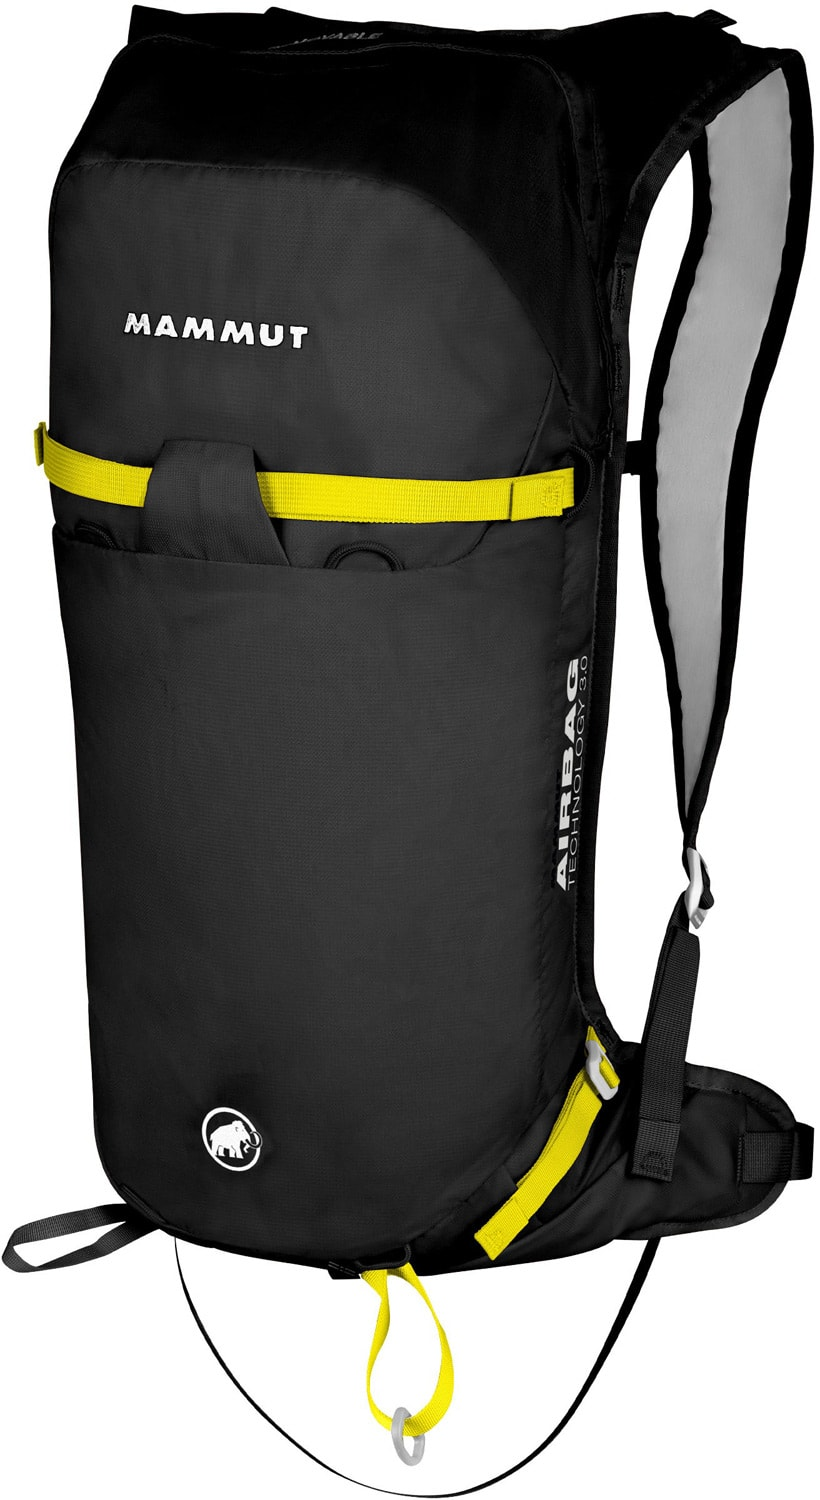 mammut light removable airbag 3.0 review